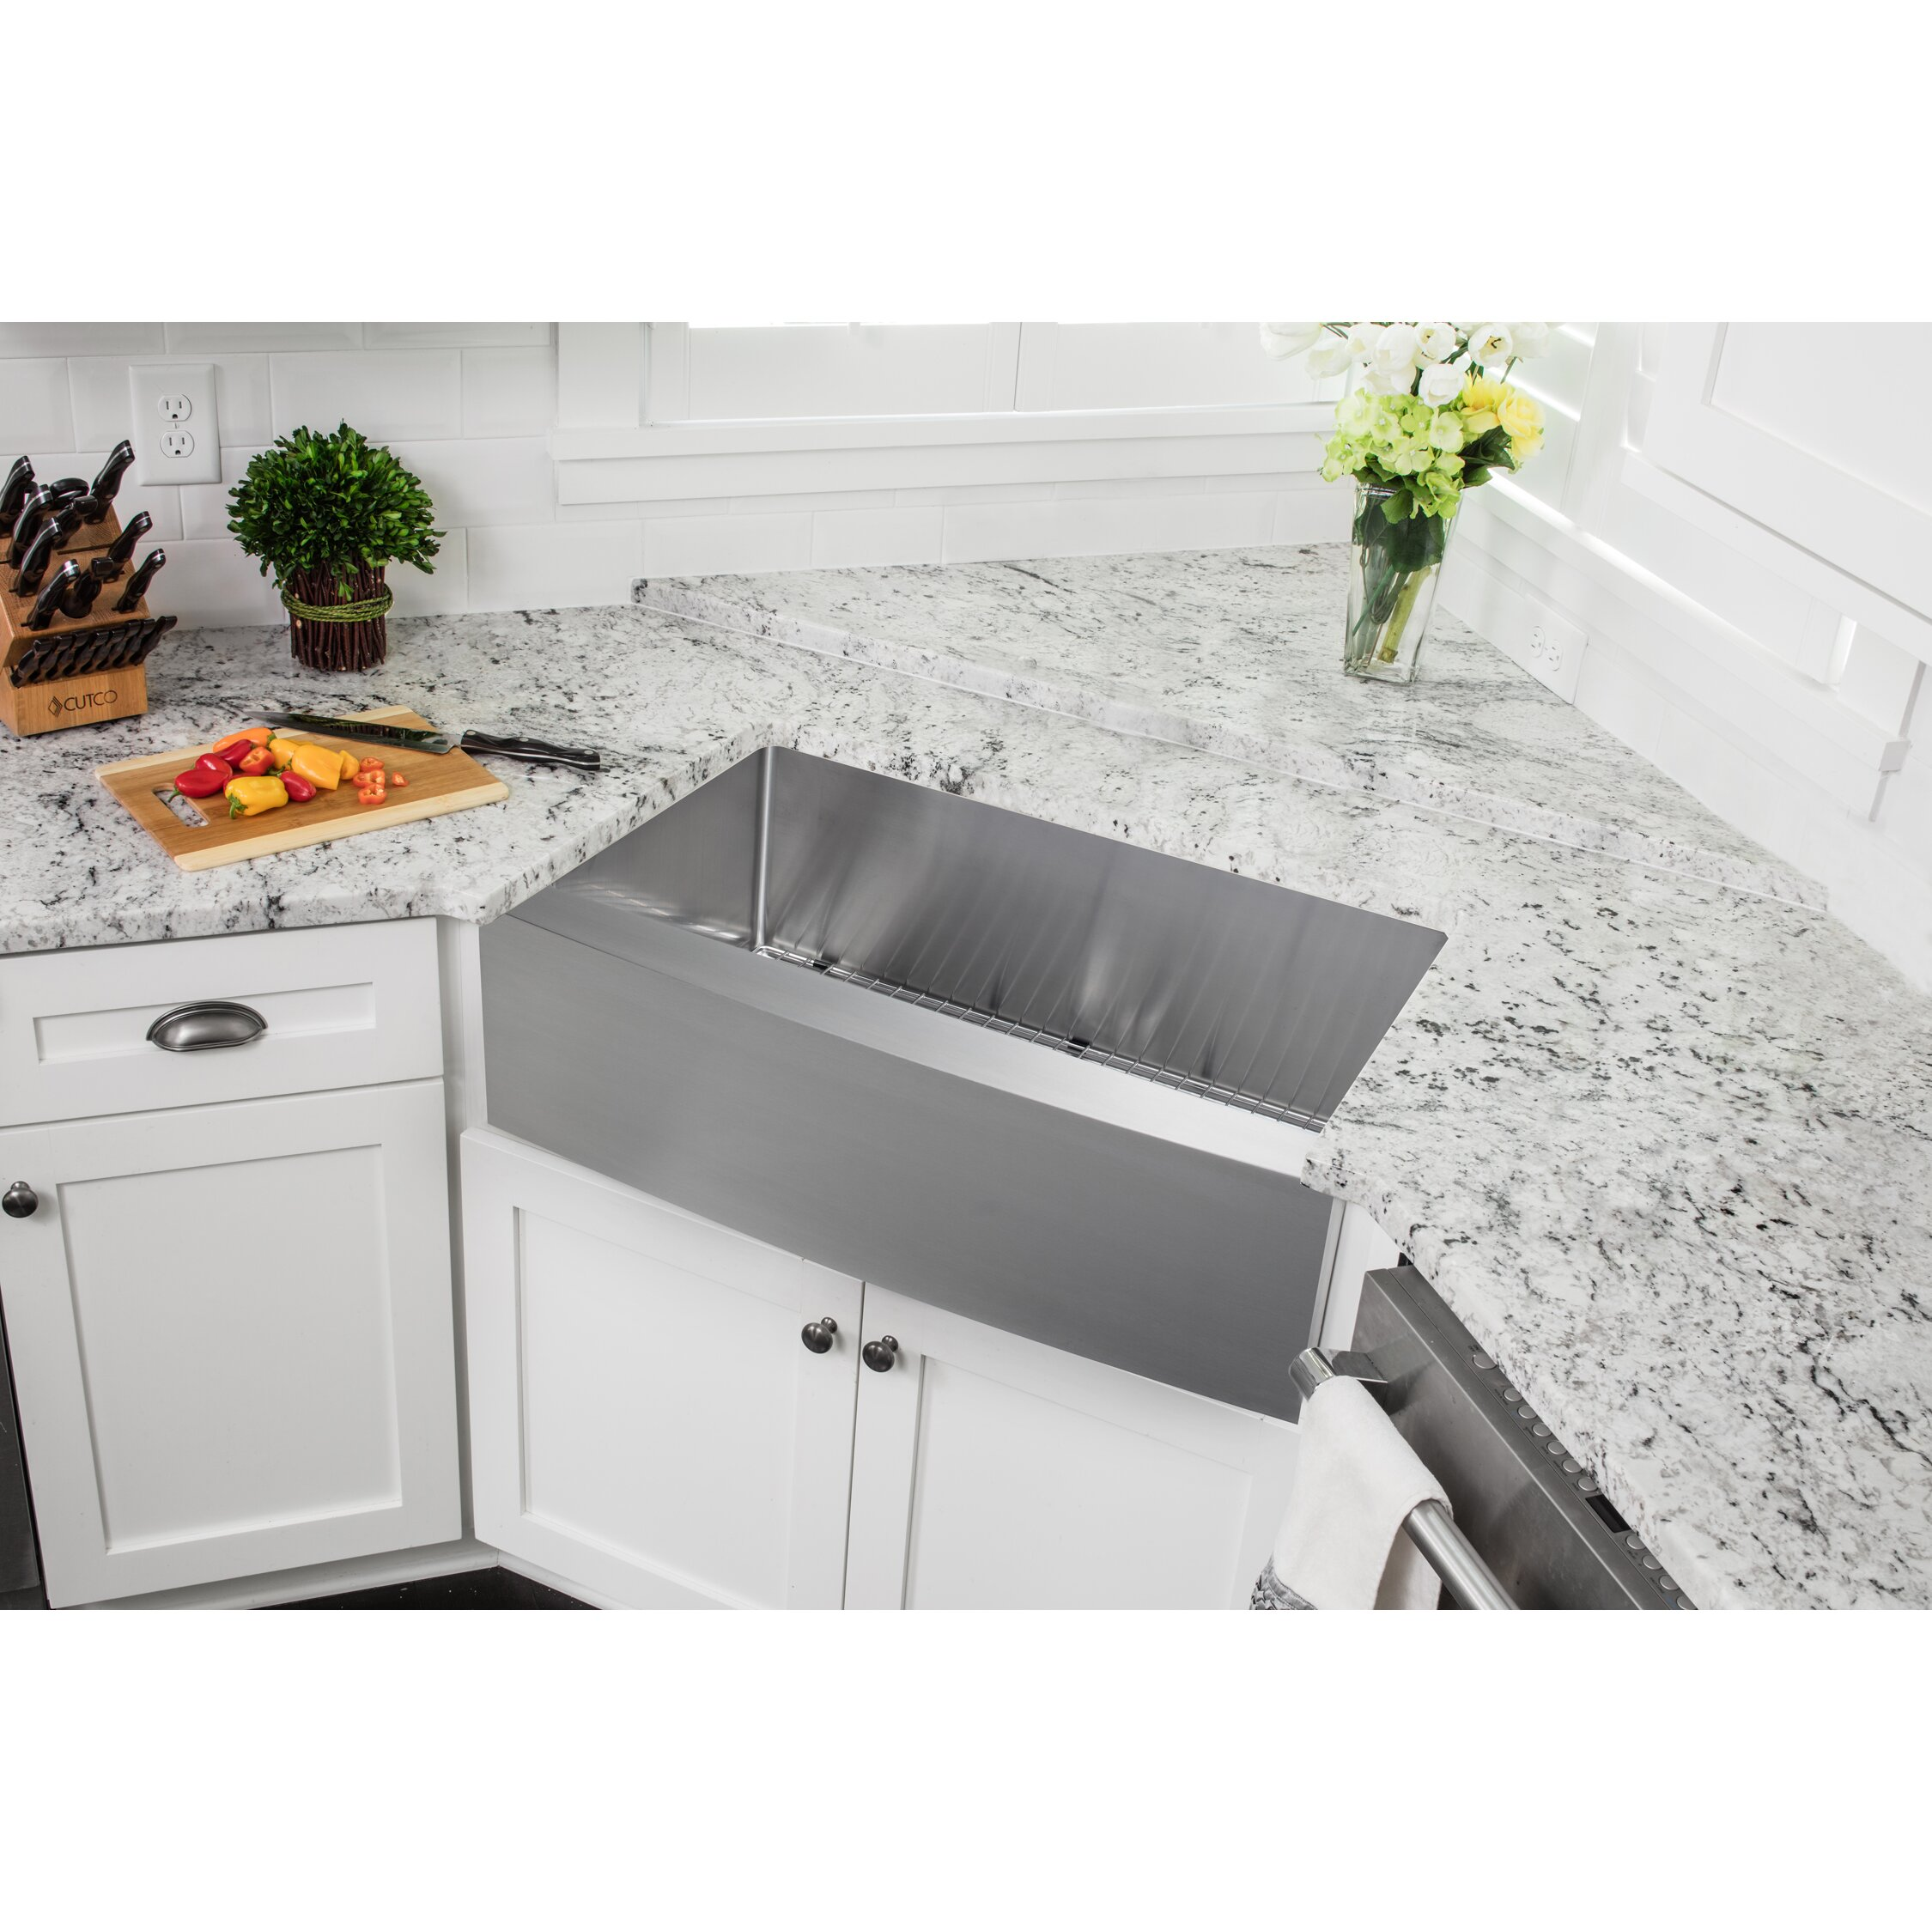 White Apron Kitchen Sink Soleil 35875 X 2075 Single Bowl Farmhouse Apron Kitchen Sink